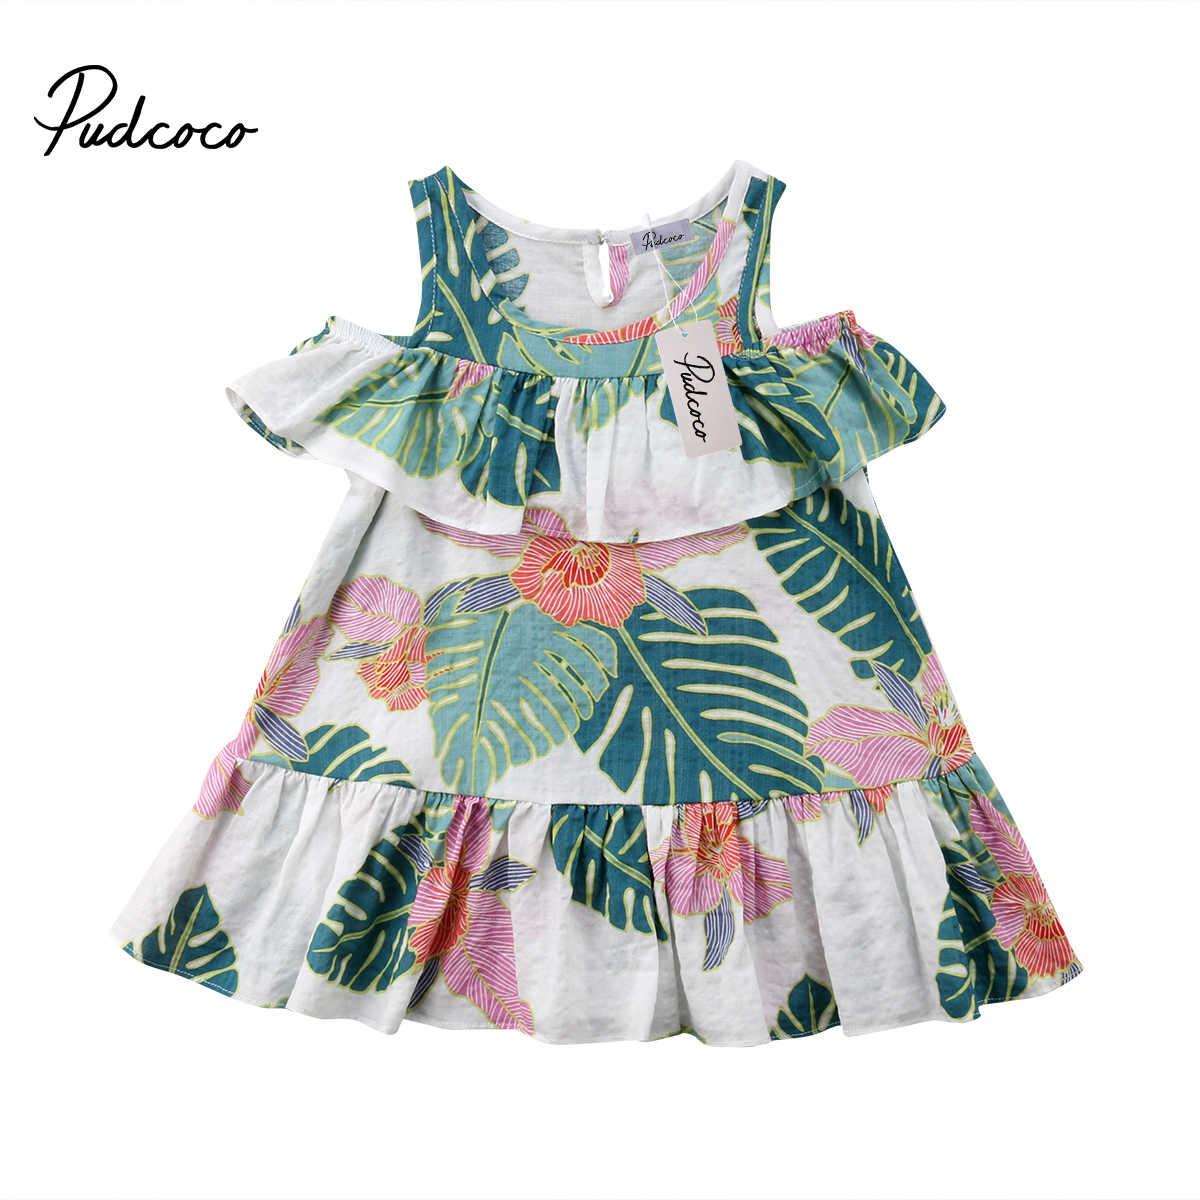 7fbbca1a5acf Detail Feedback Questions about Pudcoco Kids Baby Girl Princess Off ...